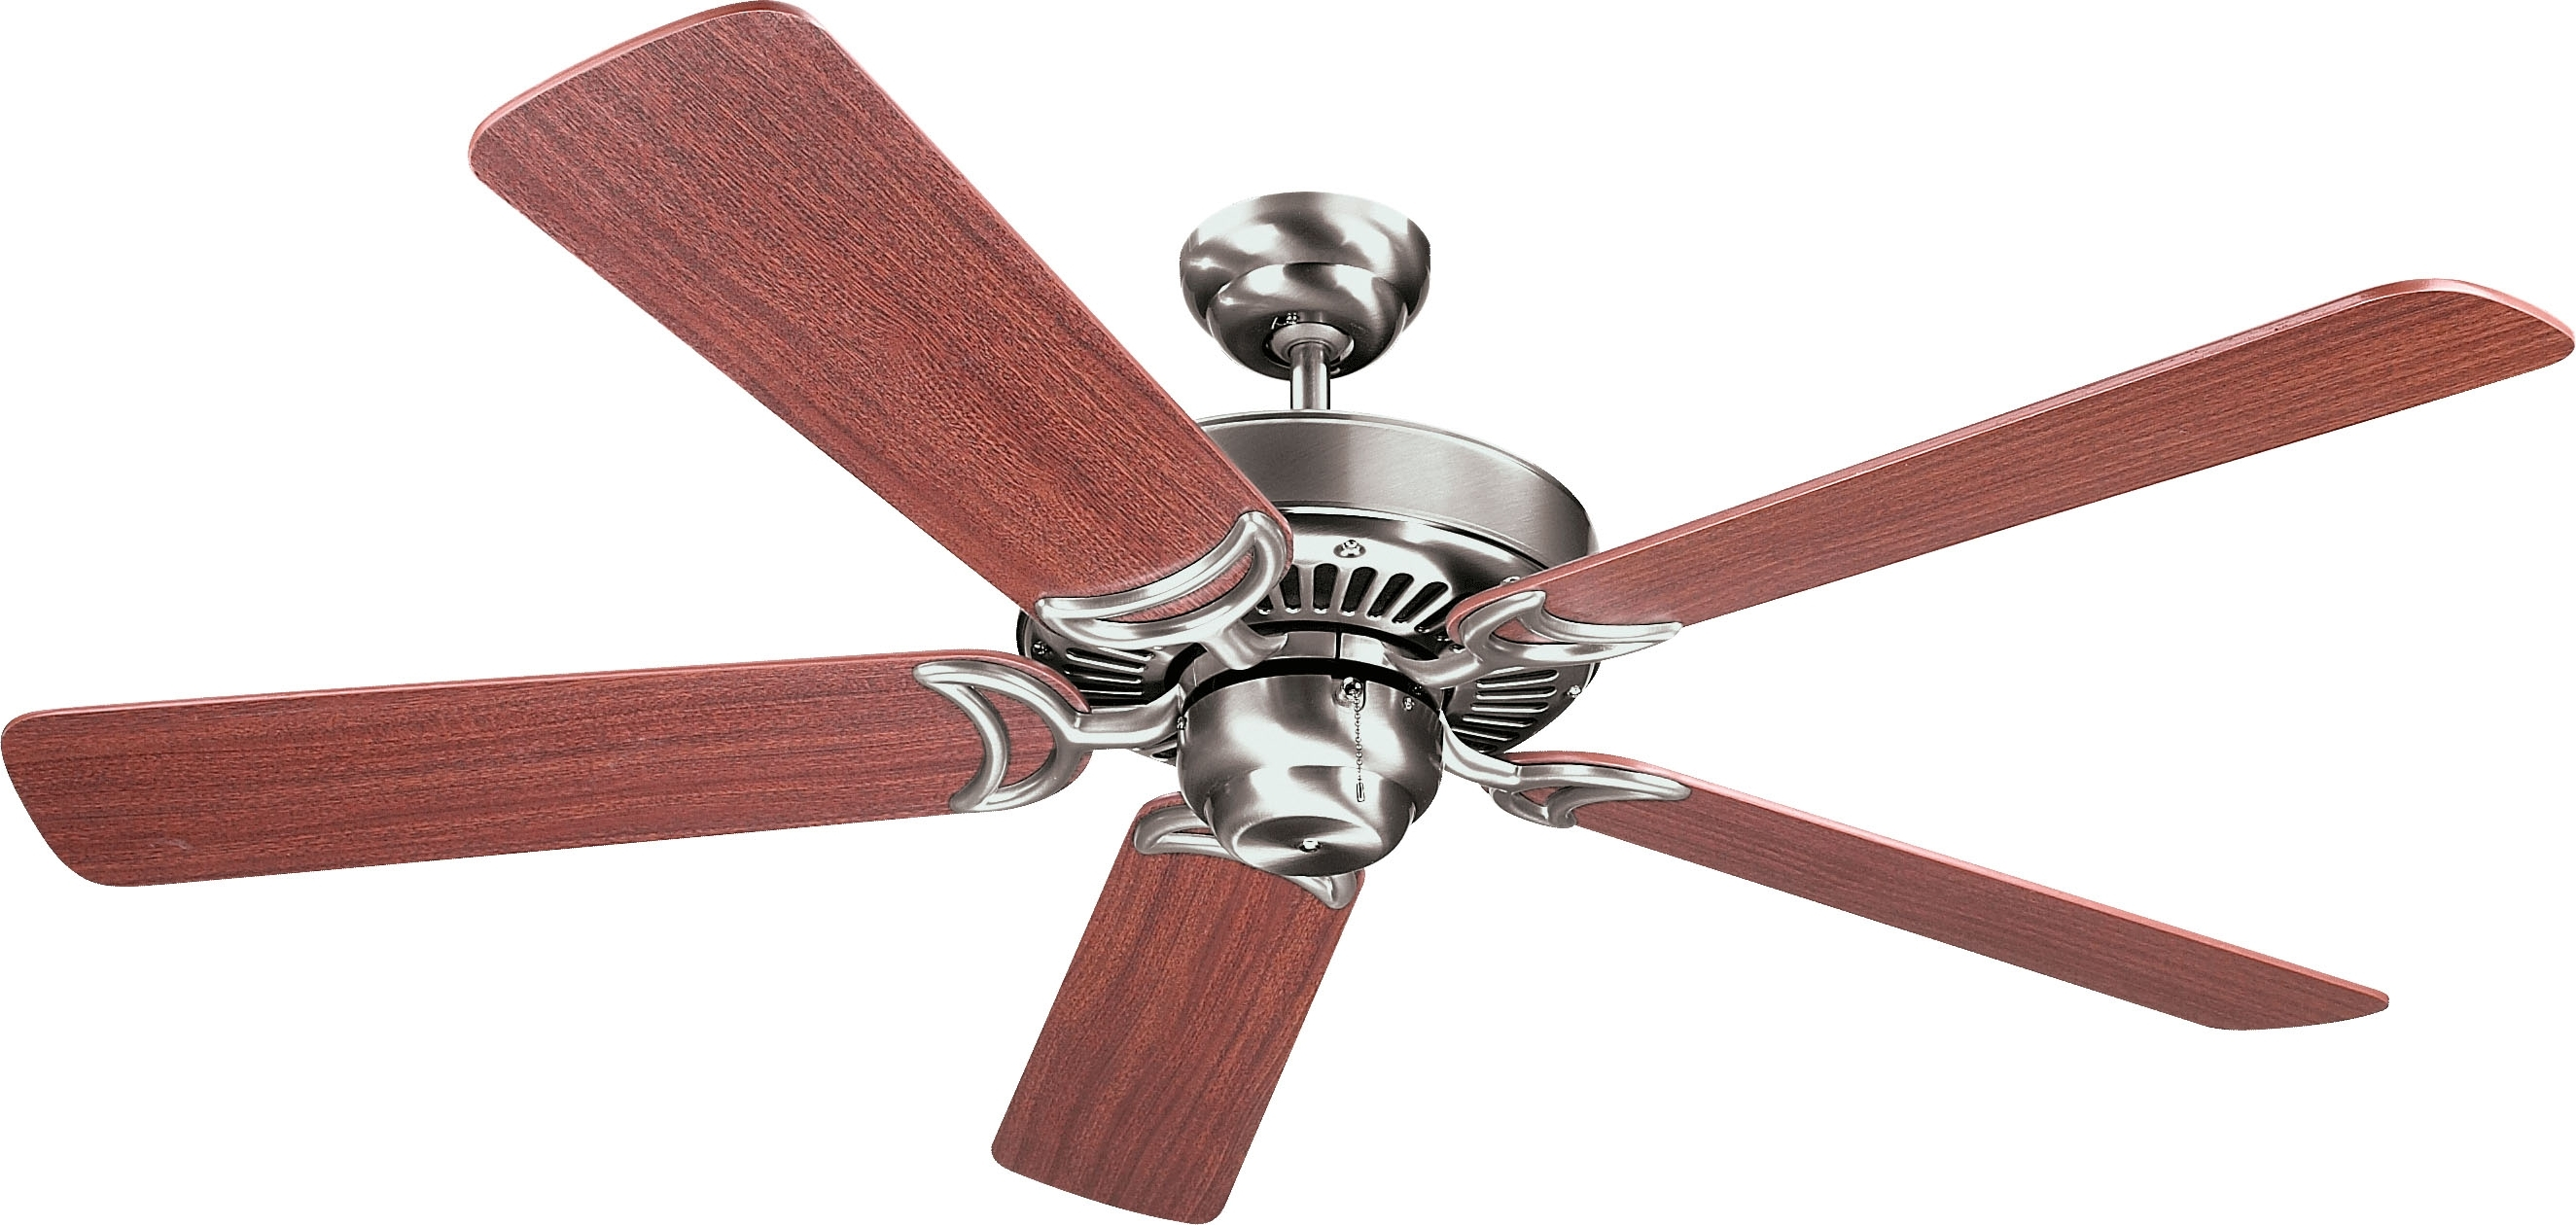 Recent Vertical Outdoor Ceiling Fans Within Ceiling: Interesting Vertical Ceiling Fans Ceiling Fan Vertical (Gallery 6 of 20)